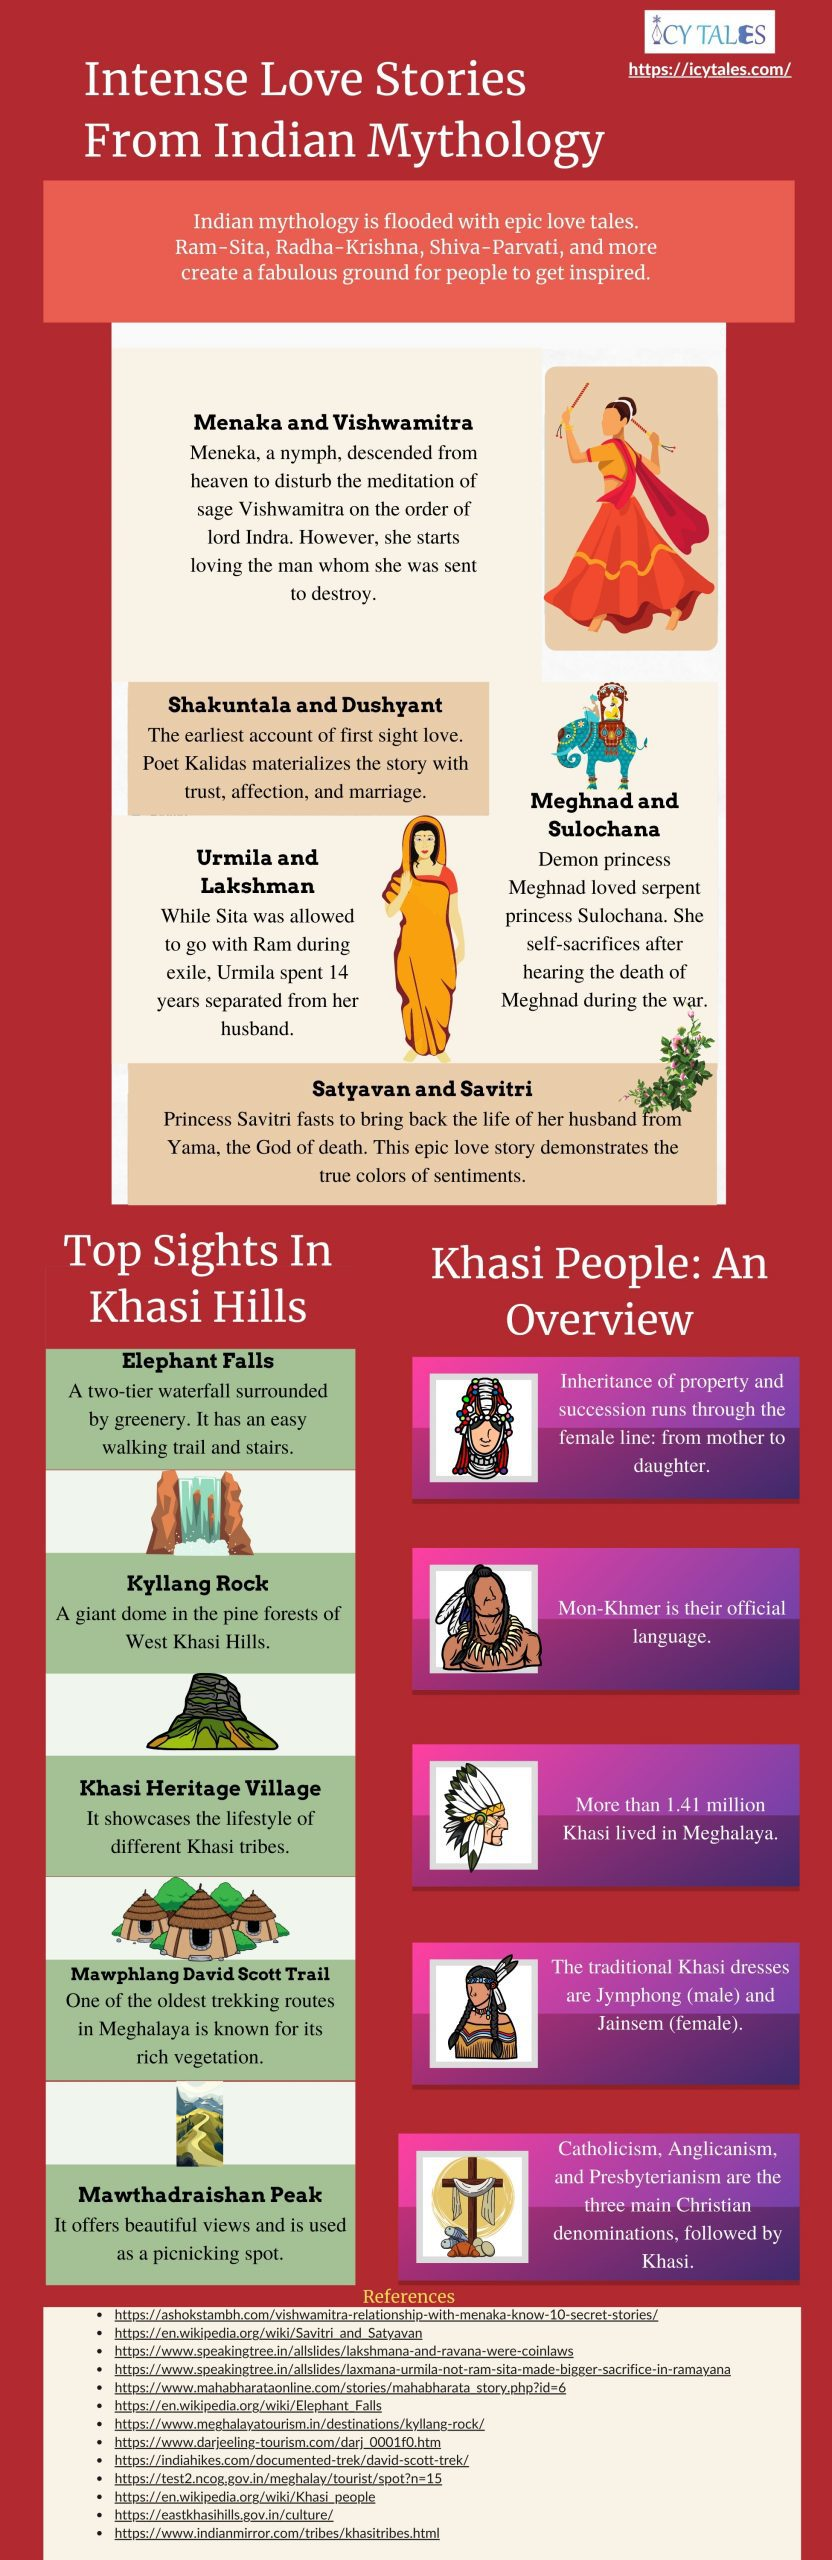 Intense Love Stories From Indian Mythology